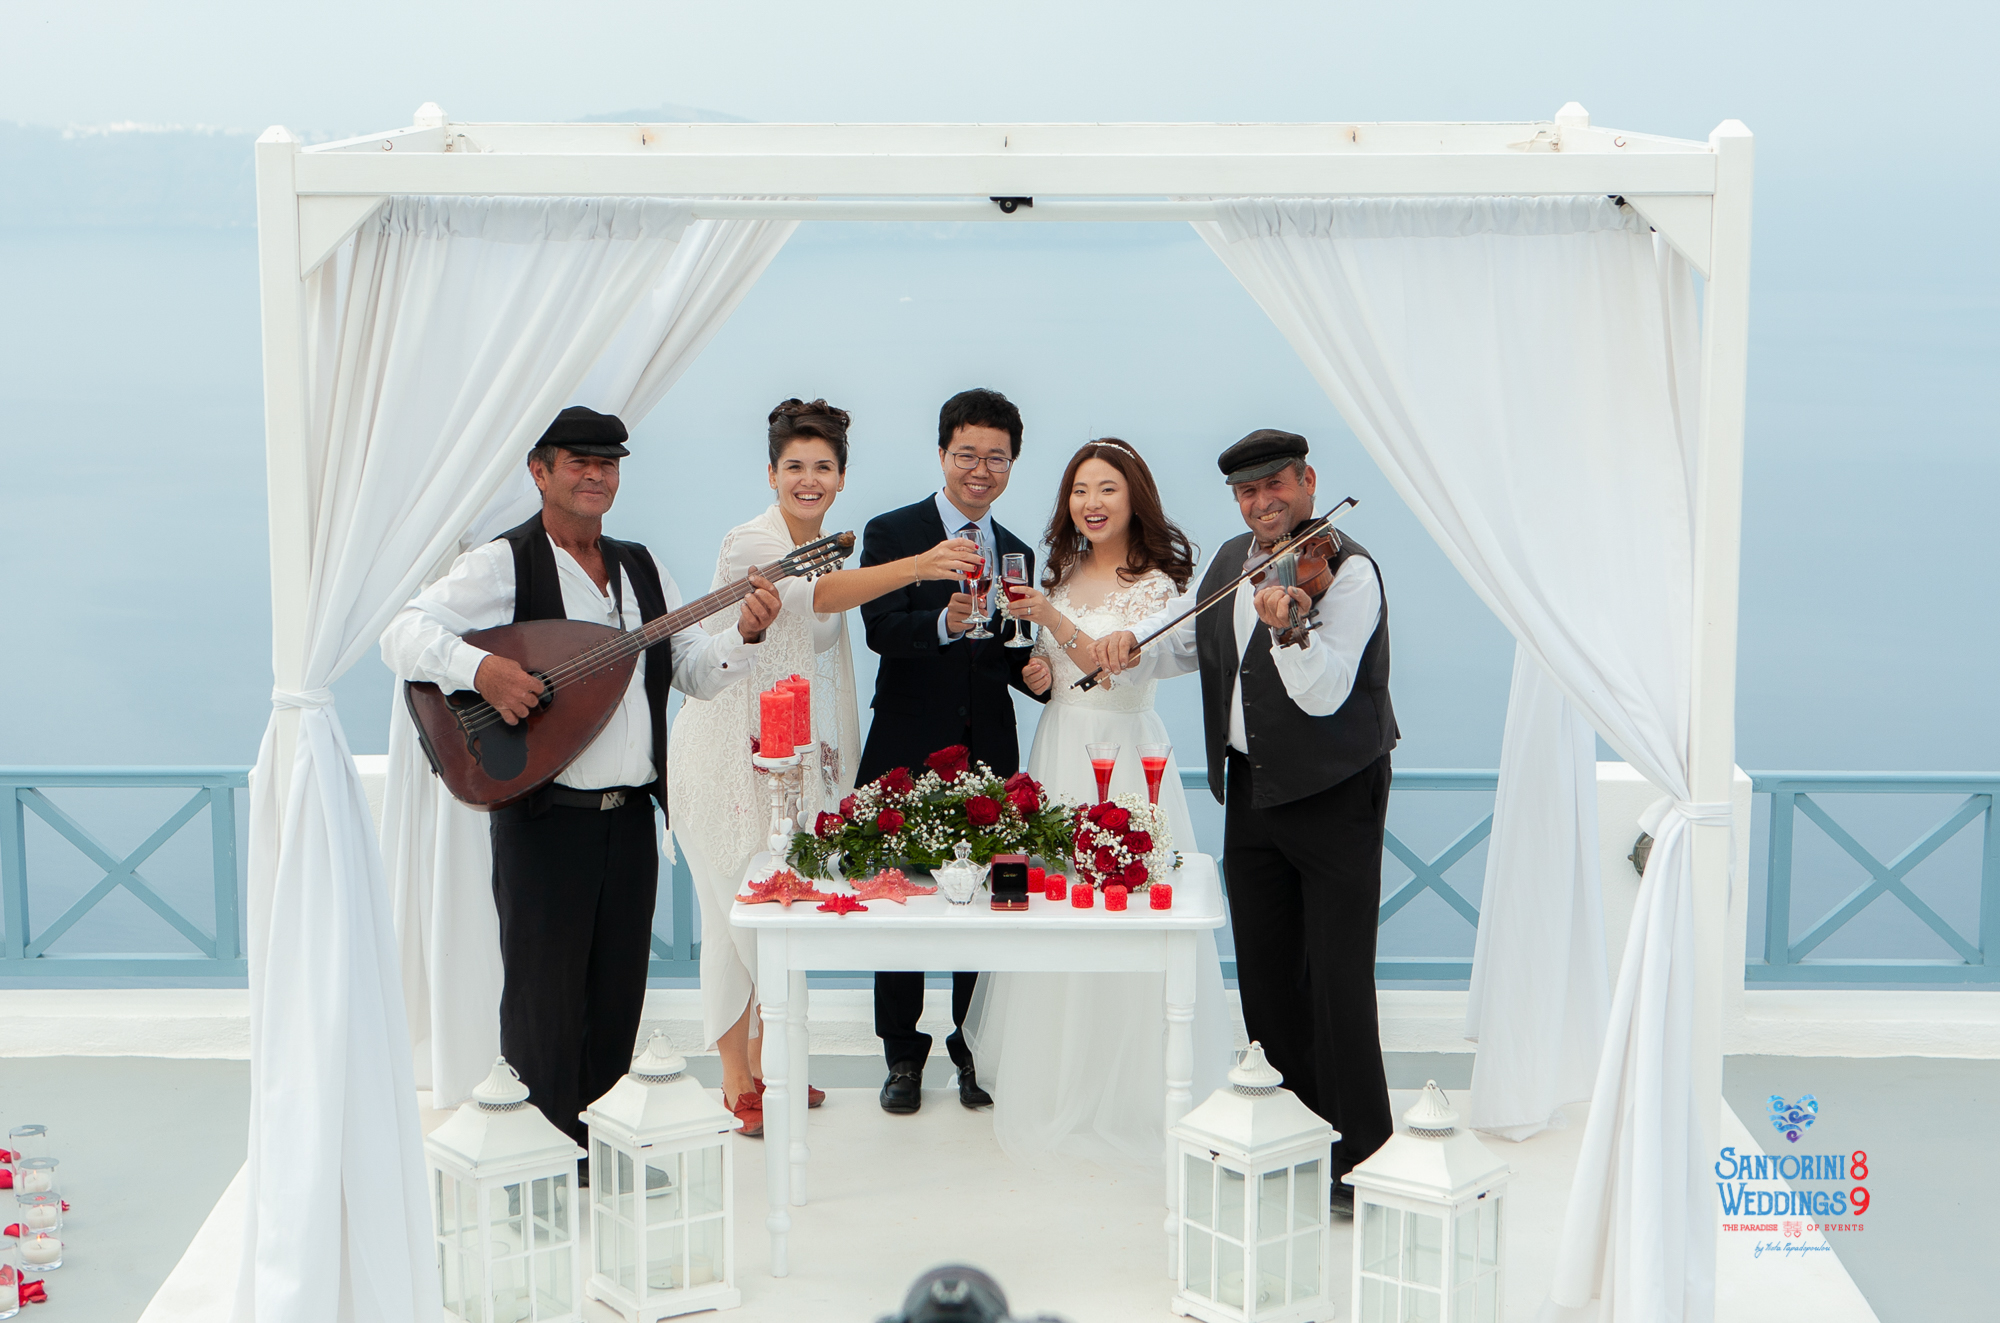 jin-huanqians-wedding-by-santorini8-weddings9---dragons-group-10.jpg